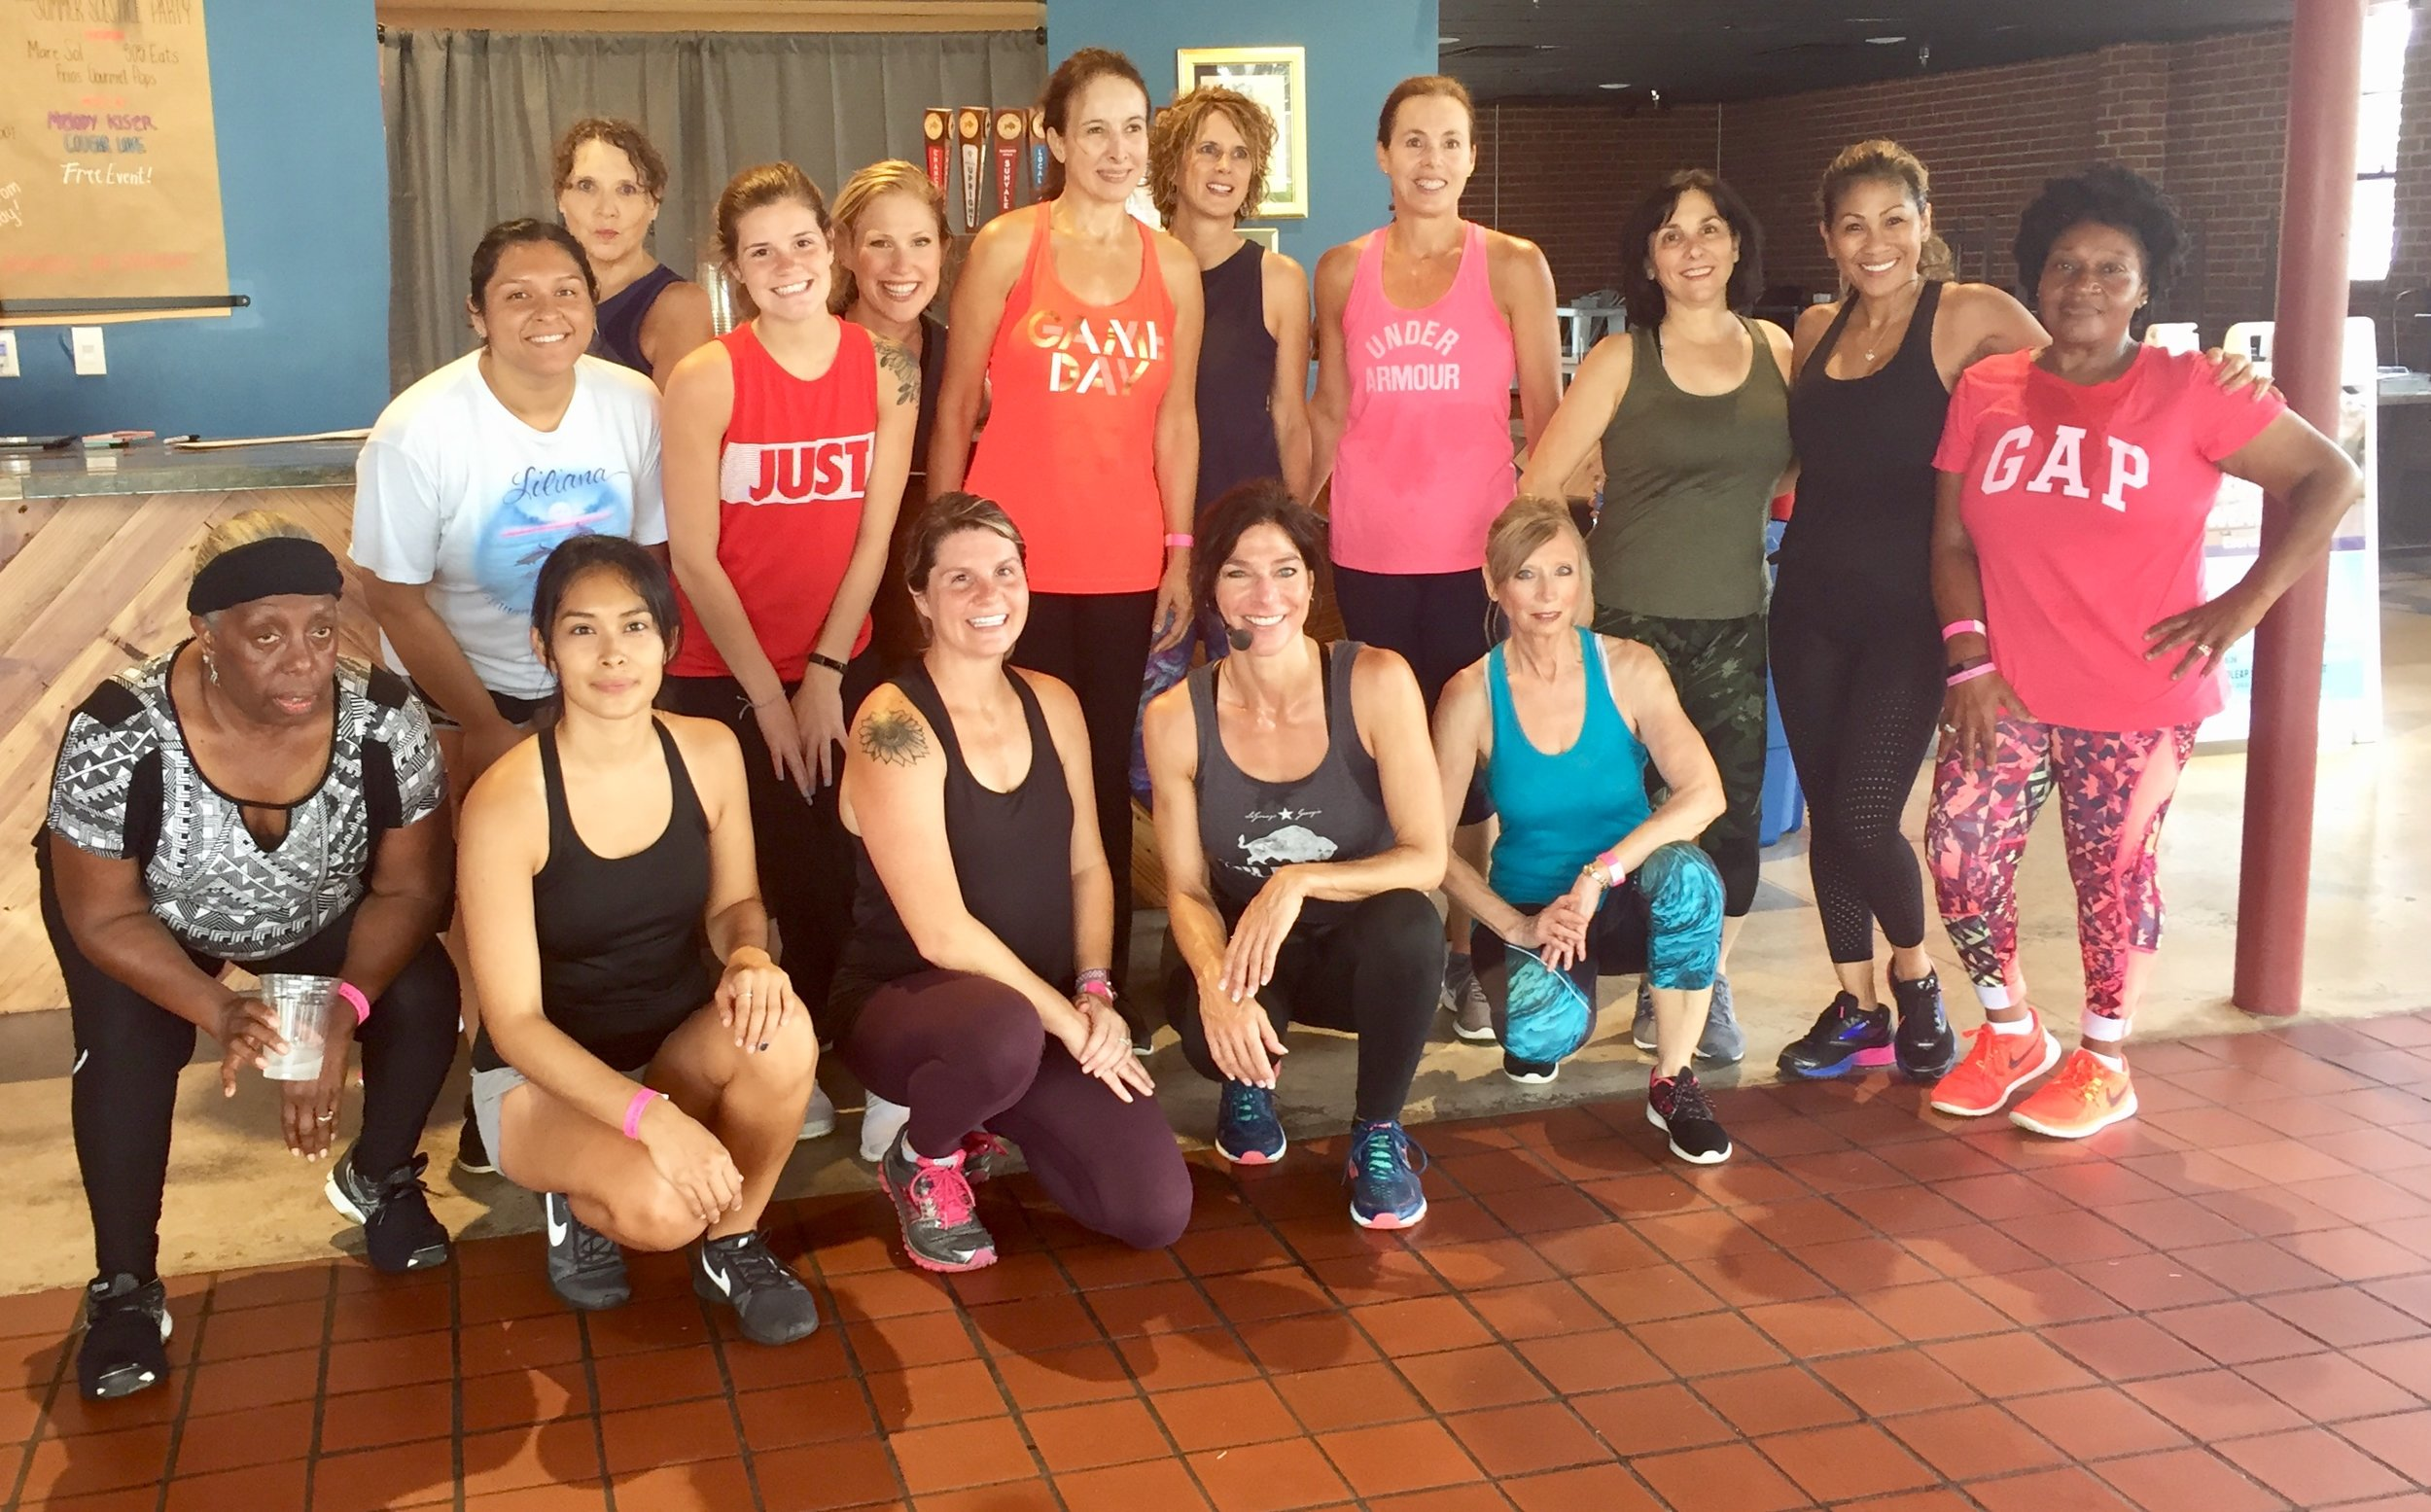 Thank you for joining us for Cardio Dance Fitness on June 23rd! We came, we danced, we had a great time! So excited for Boot Camp on July 7th!